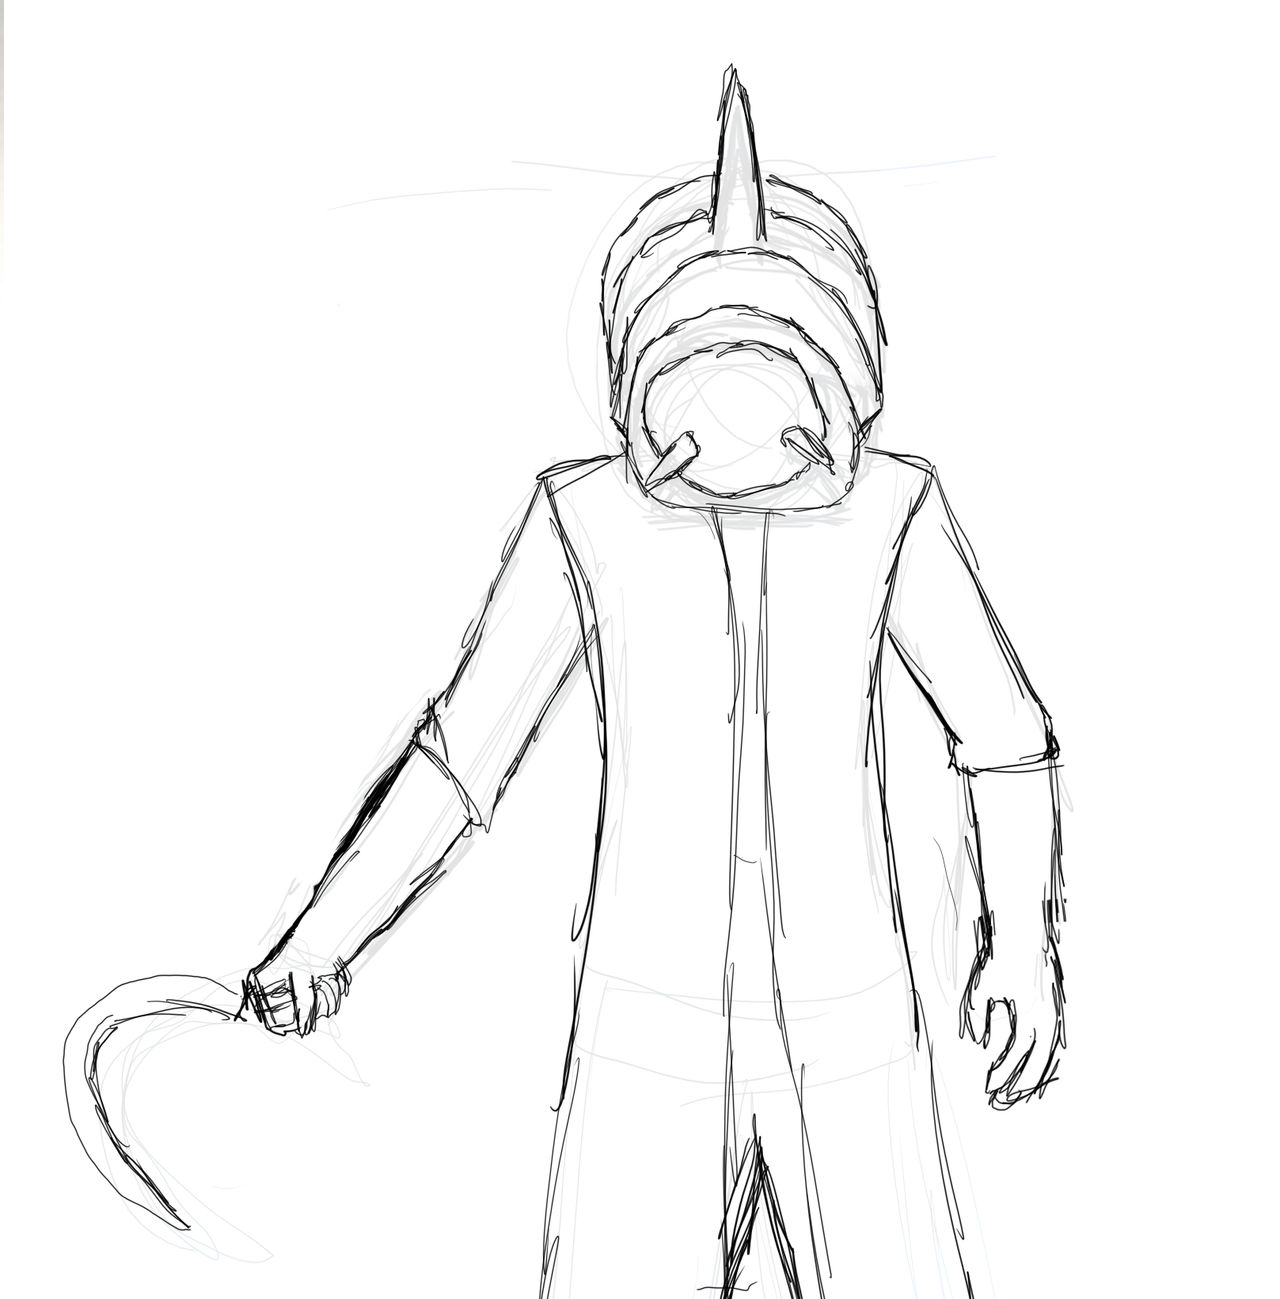 Here's a rough sketch of the helmet monster